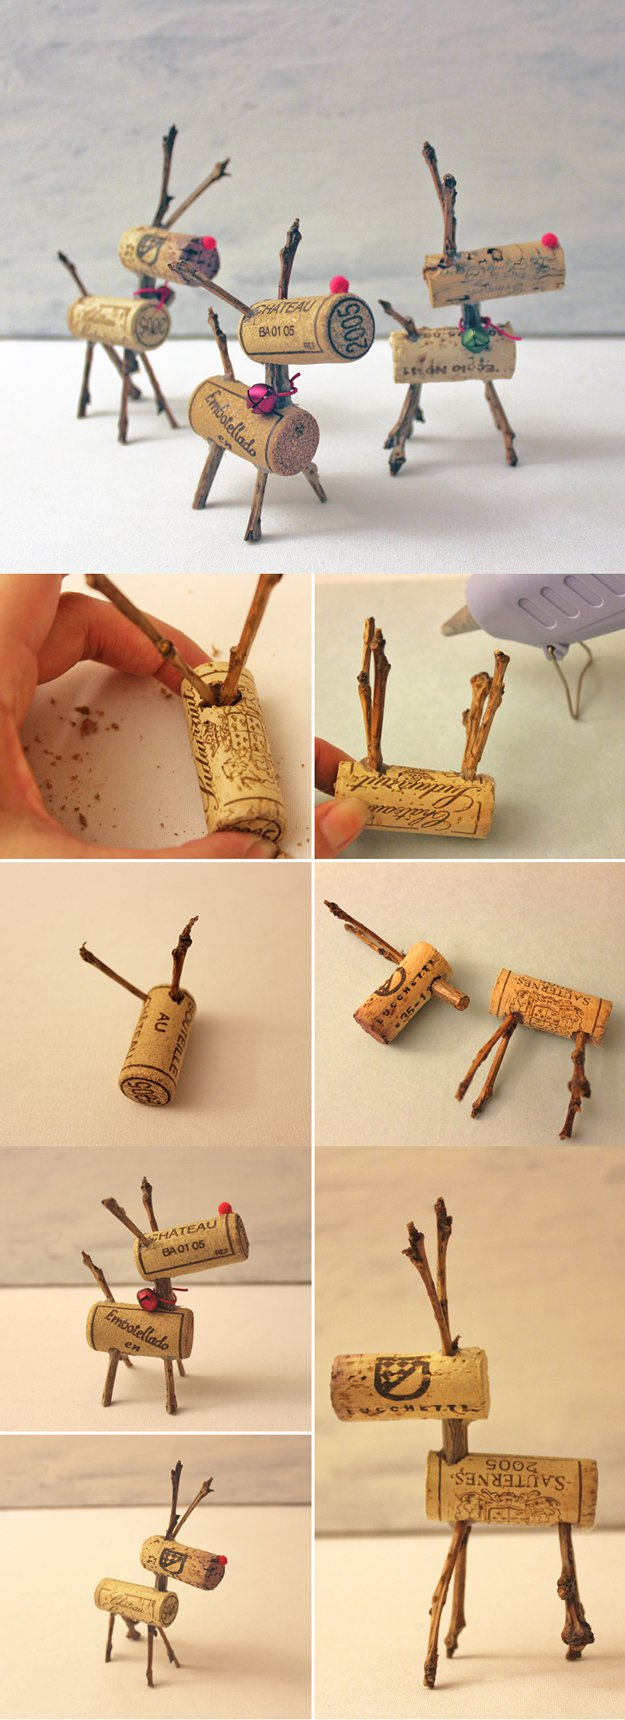 Reindeer Craft Made Out of Wine Corks.